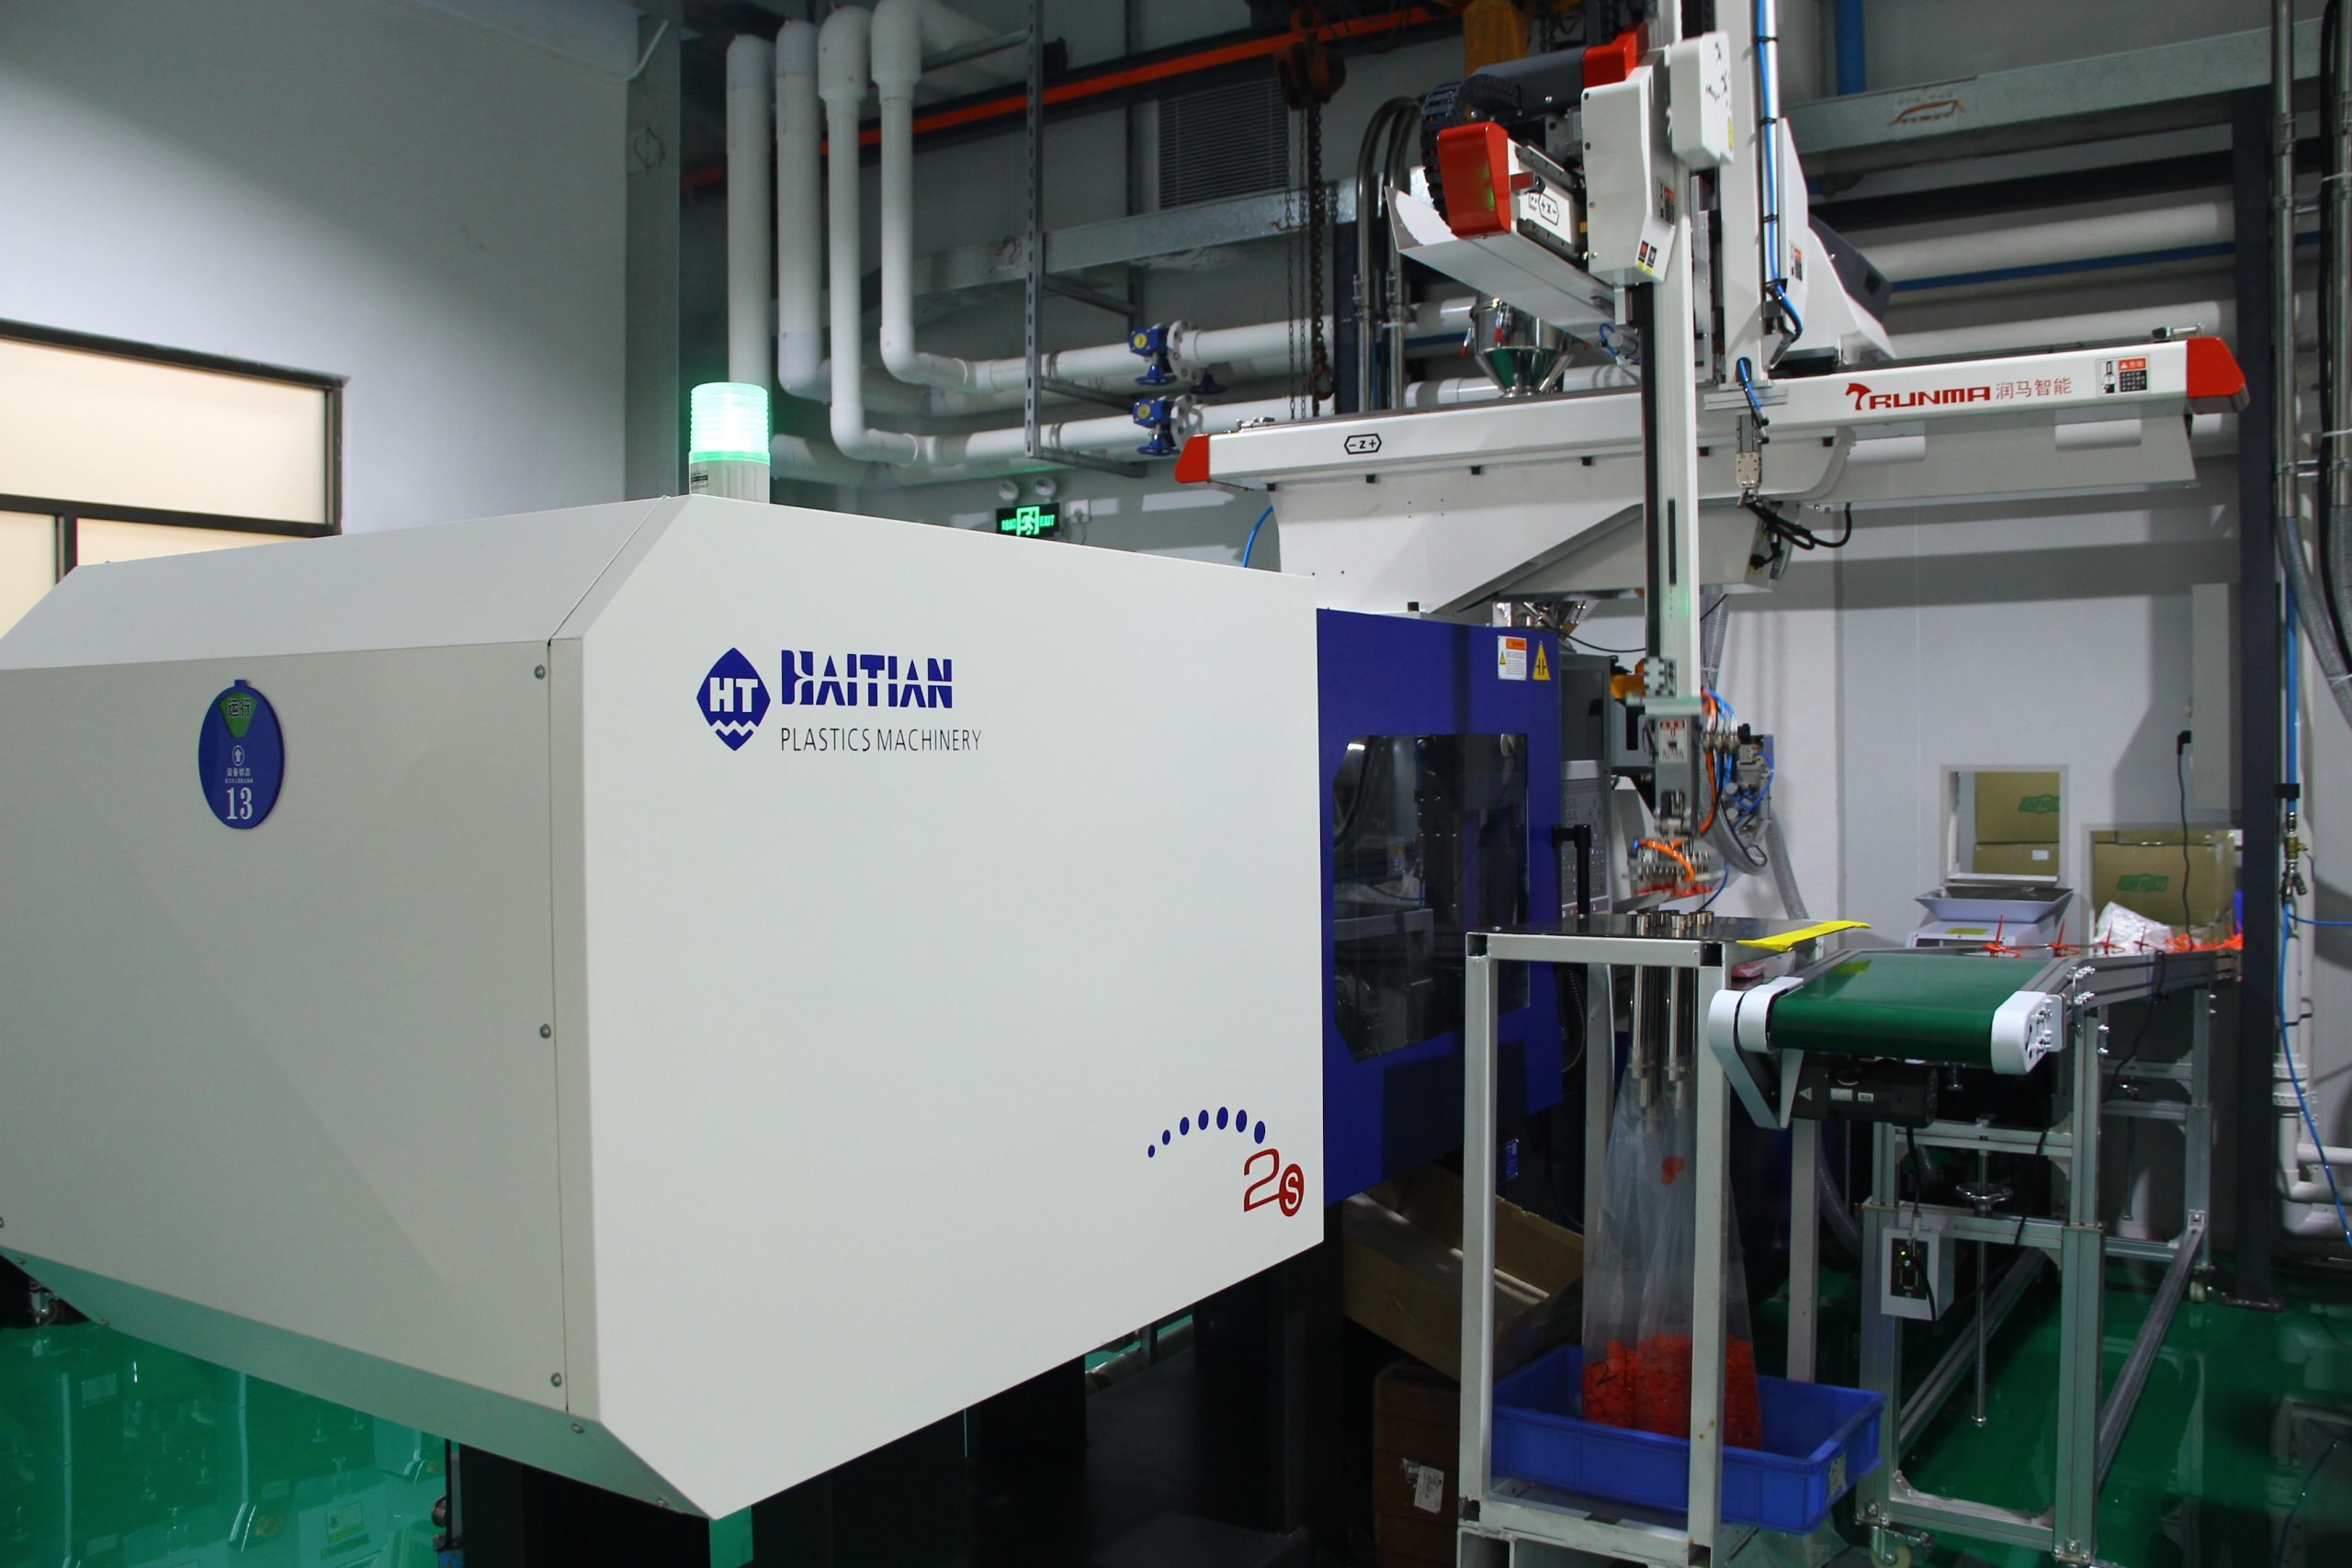 Our dust-free injection molding department was launched at the end of 2019.